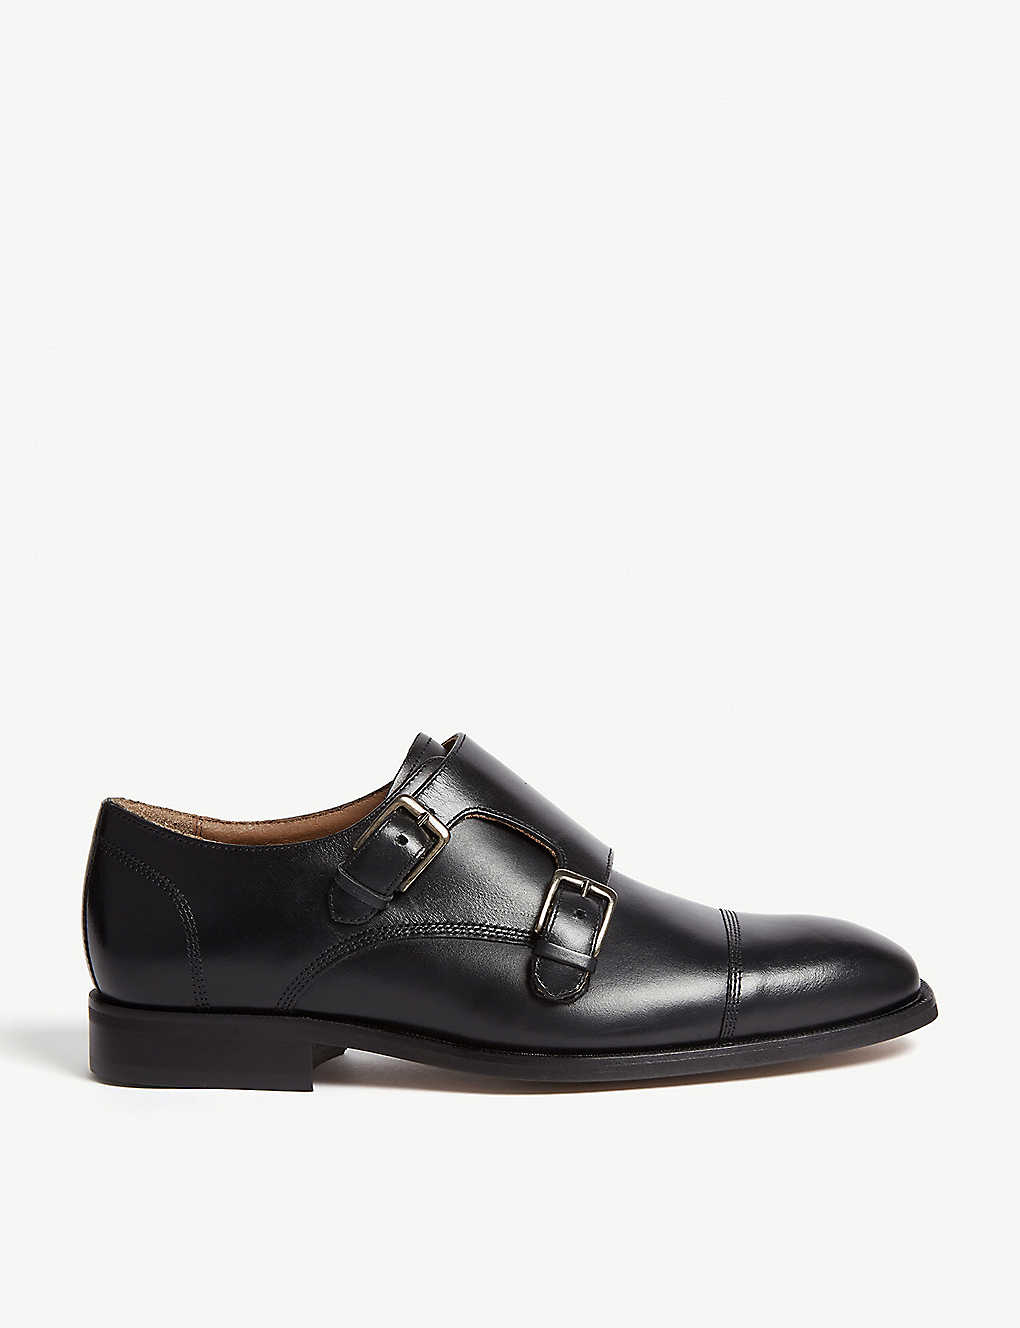 f5d260346ce REISS - Leicester leather double-monk shoes | Selfridges.com